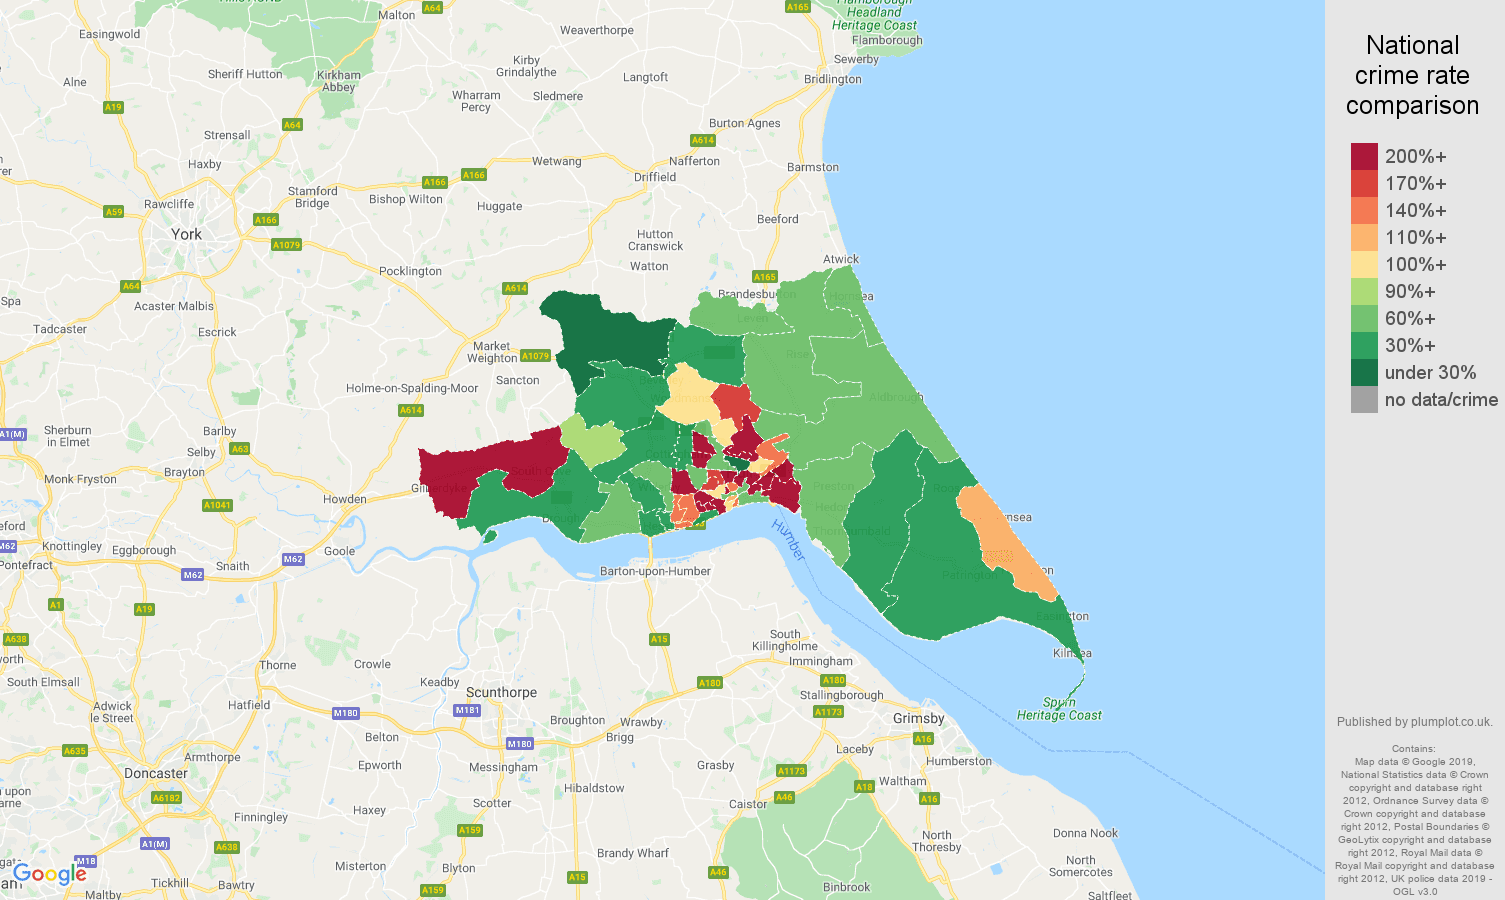 Hull other crime rate comparison map